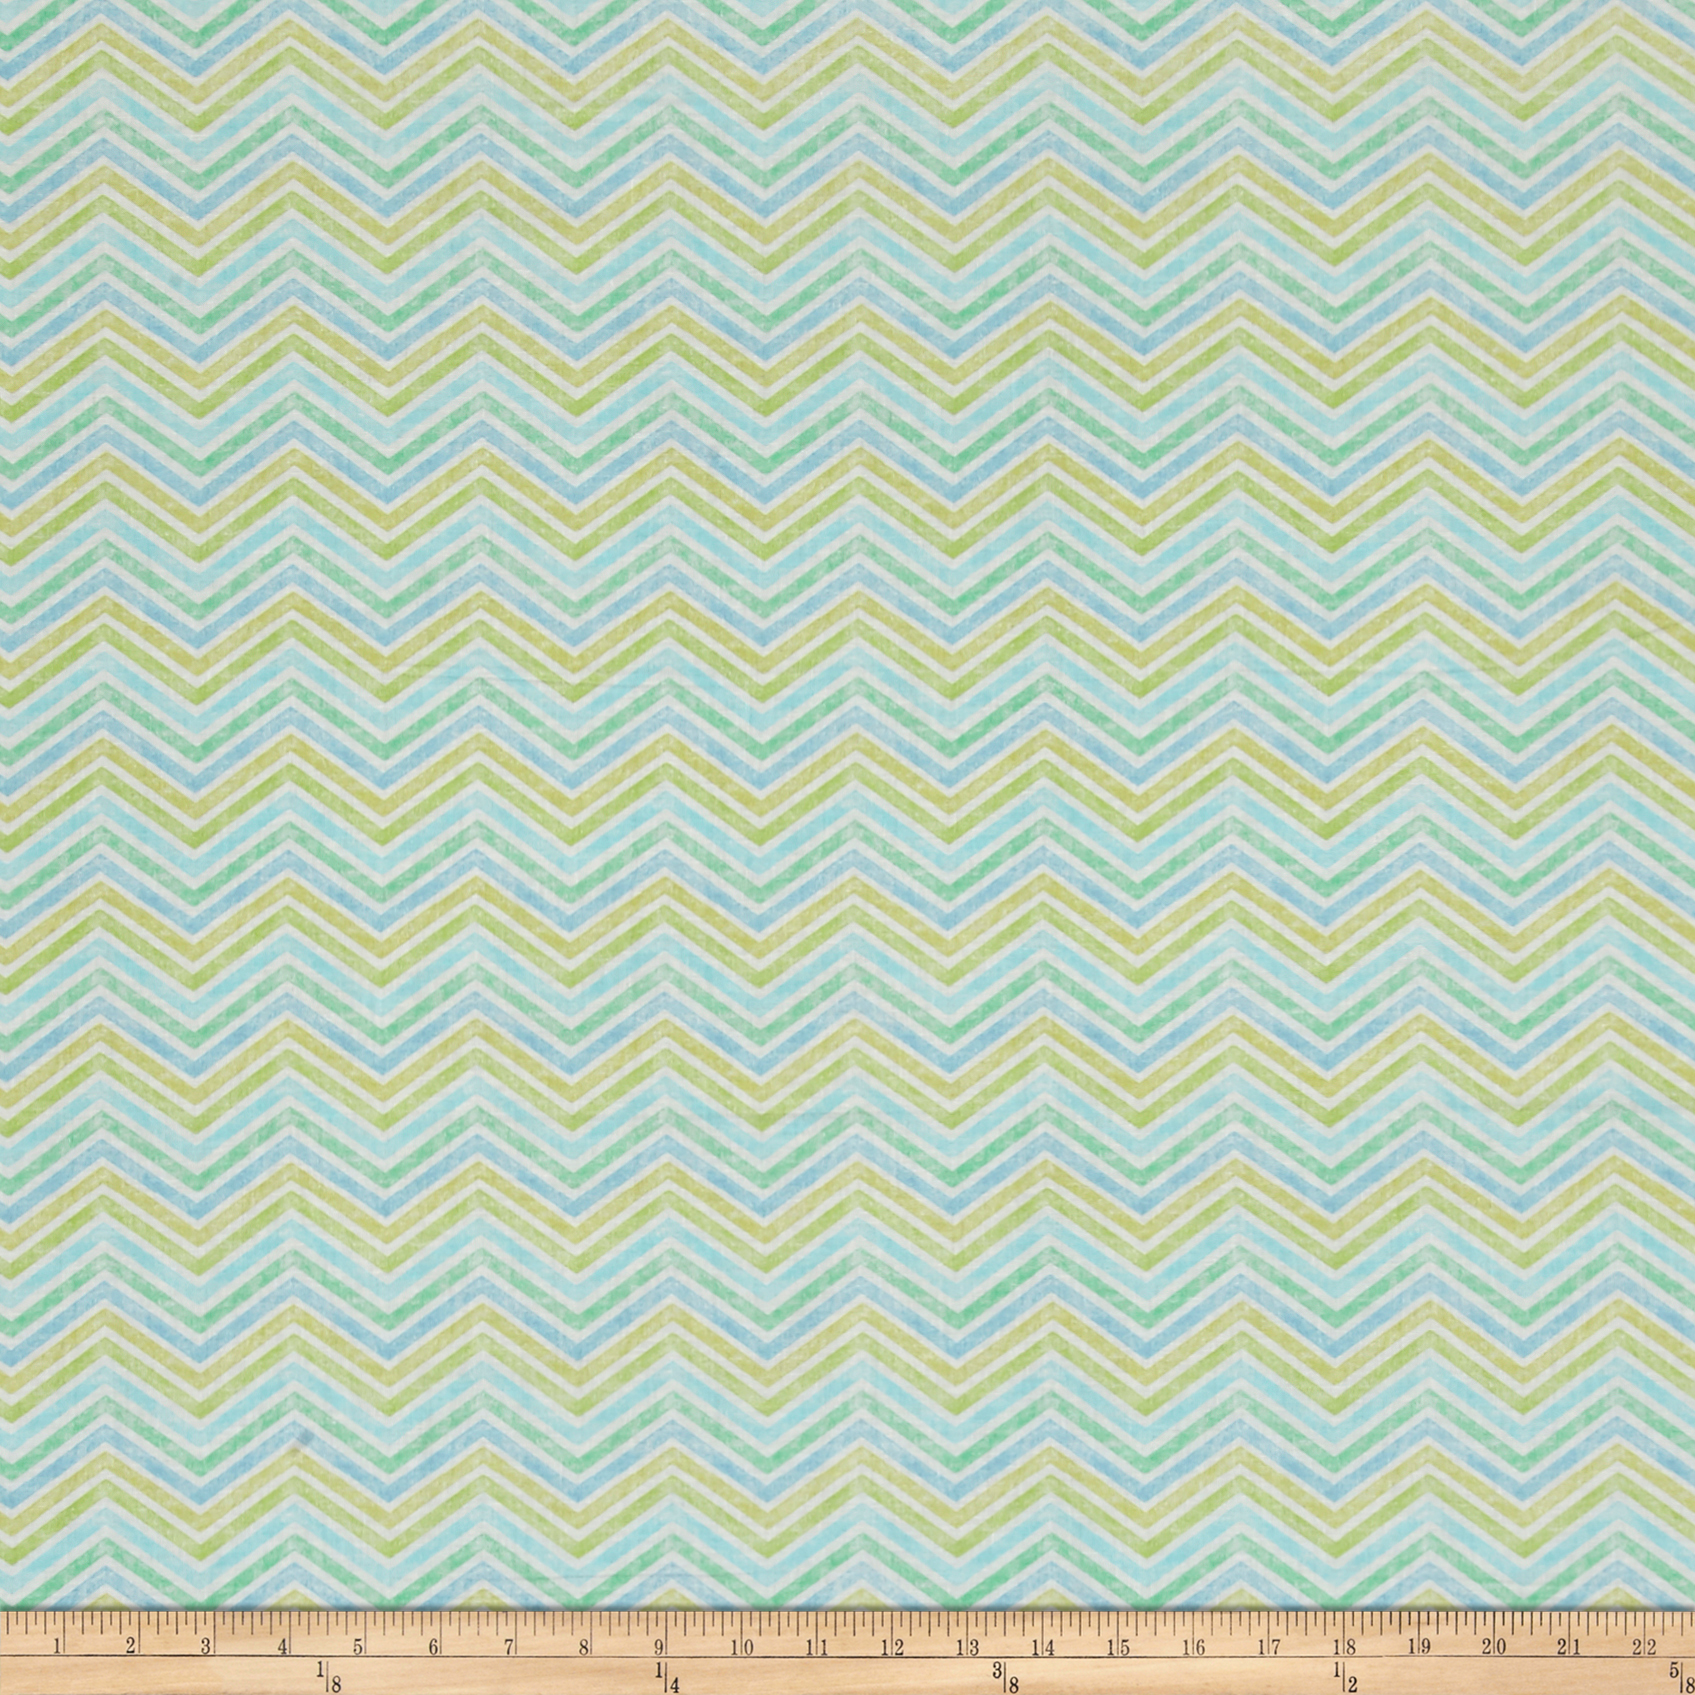 QT Fabrics Delaney Chevron Cream